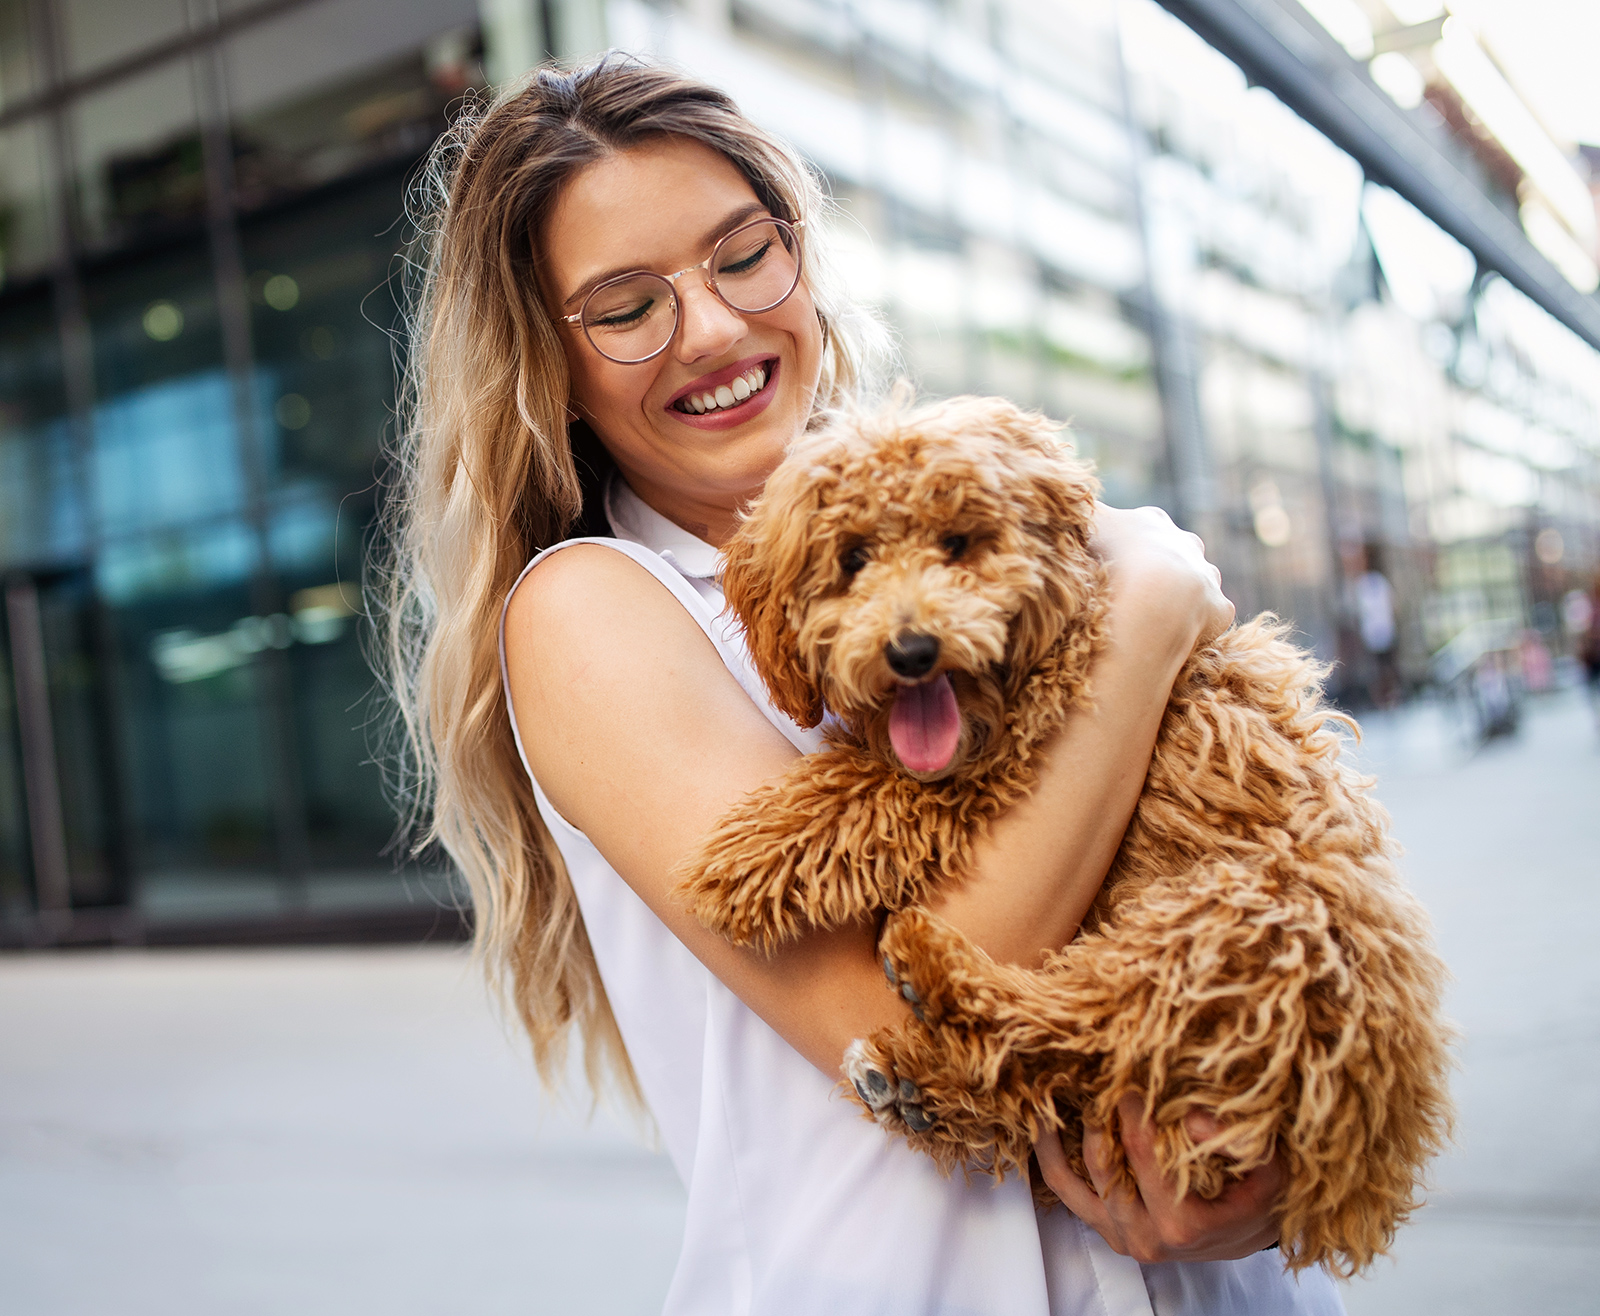 beauty-woman-with-her-dog-playing-outdoors-LN2XF4U.jpg